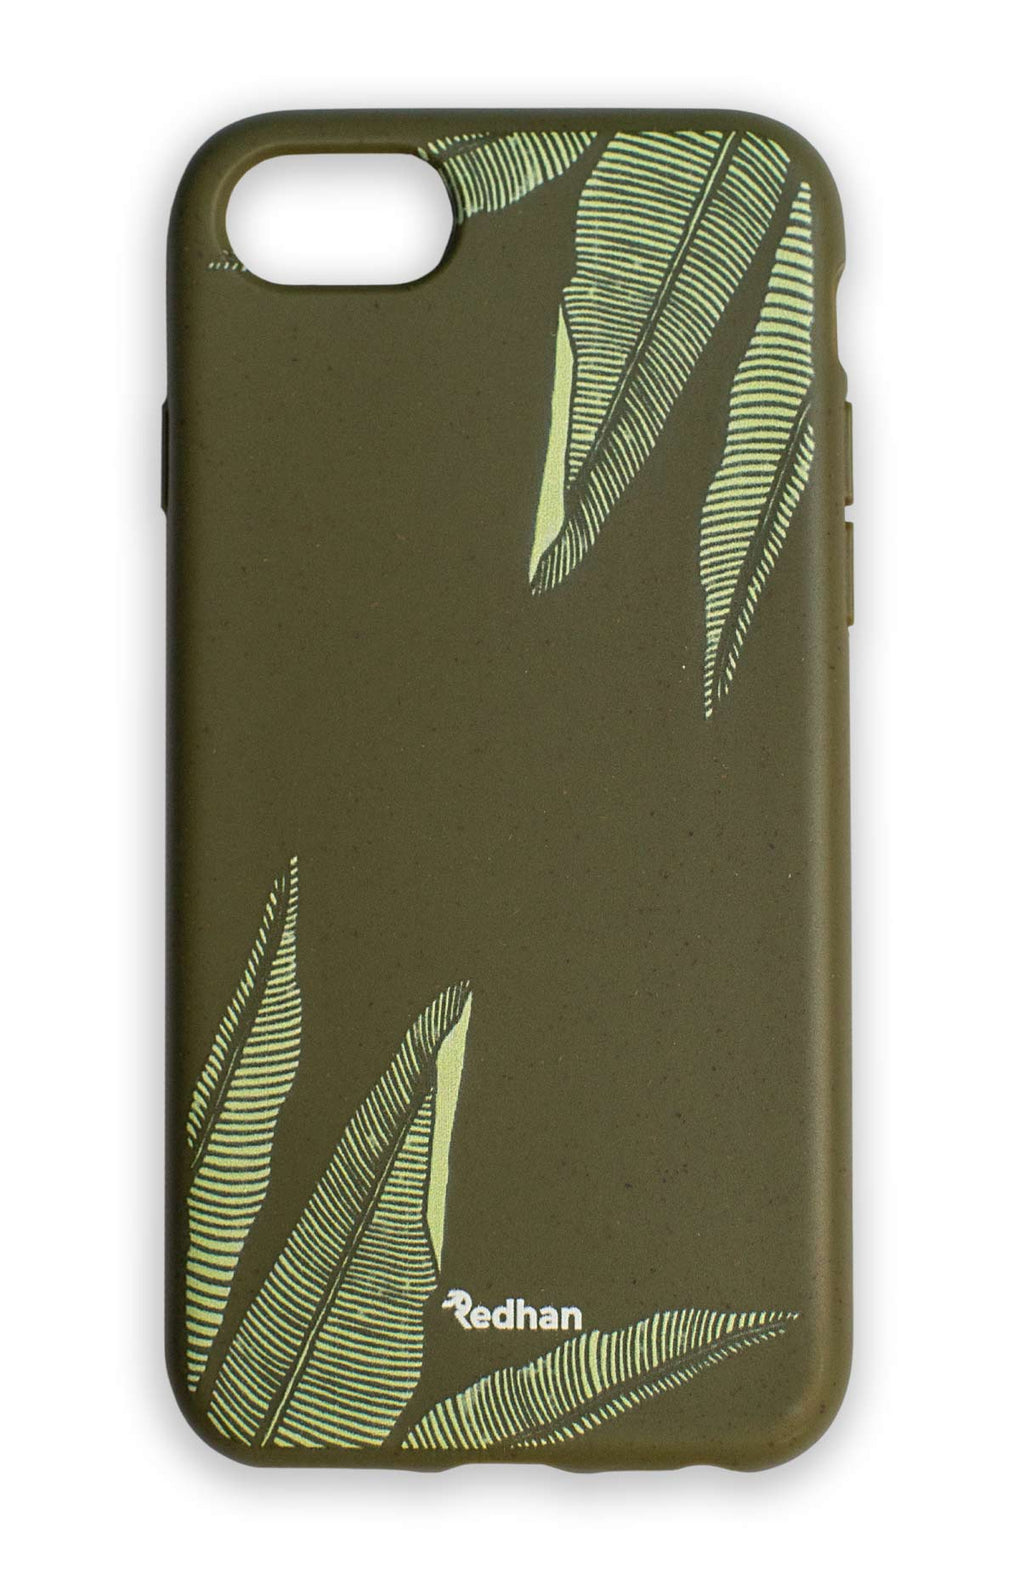 Eco Friendly iPhone 6/6S/7/8/SE (2nd Gen) Phone Case - Banana Leaf in Olive Green